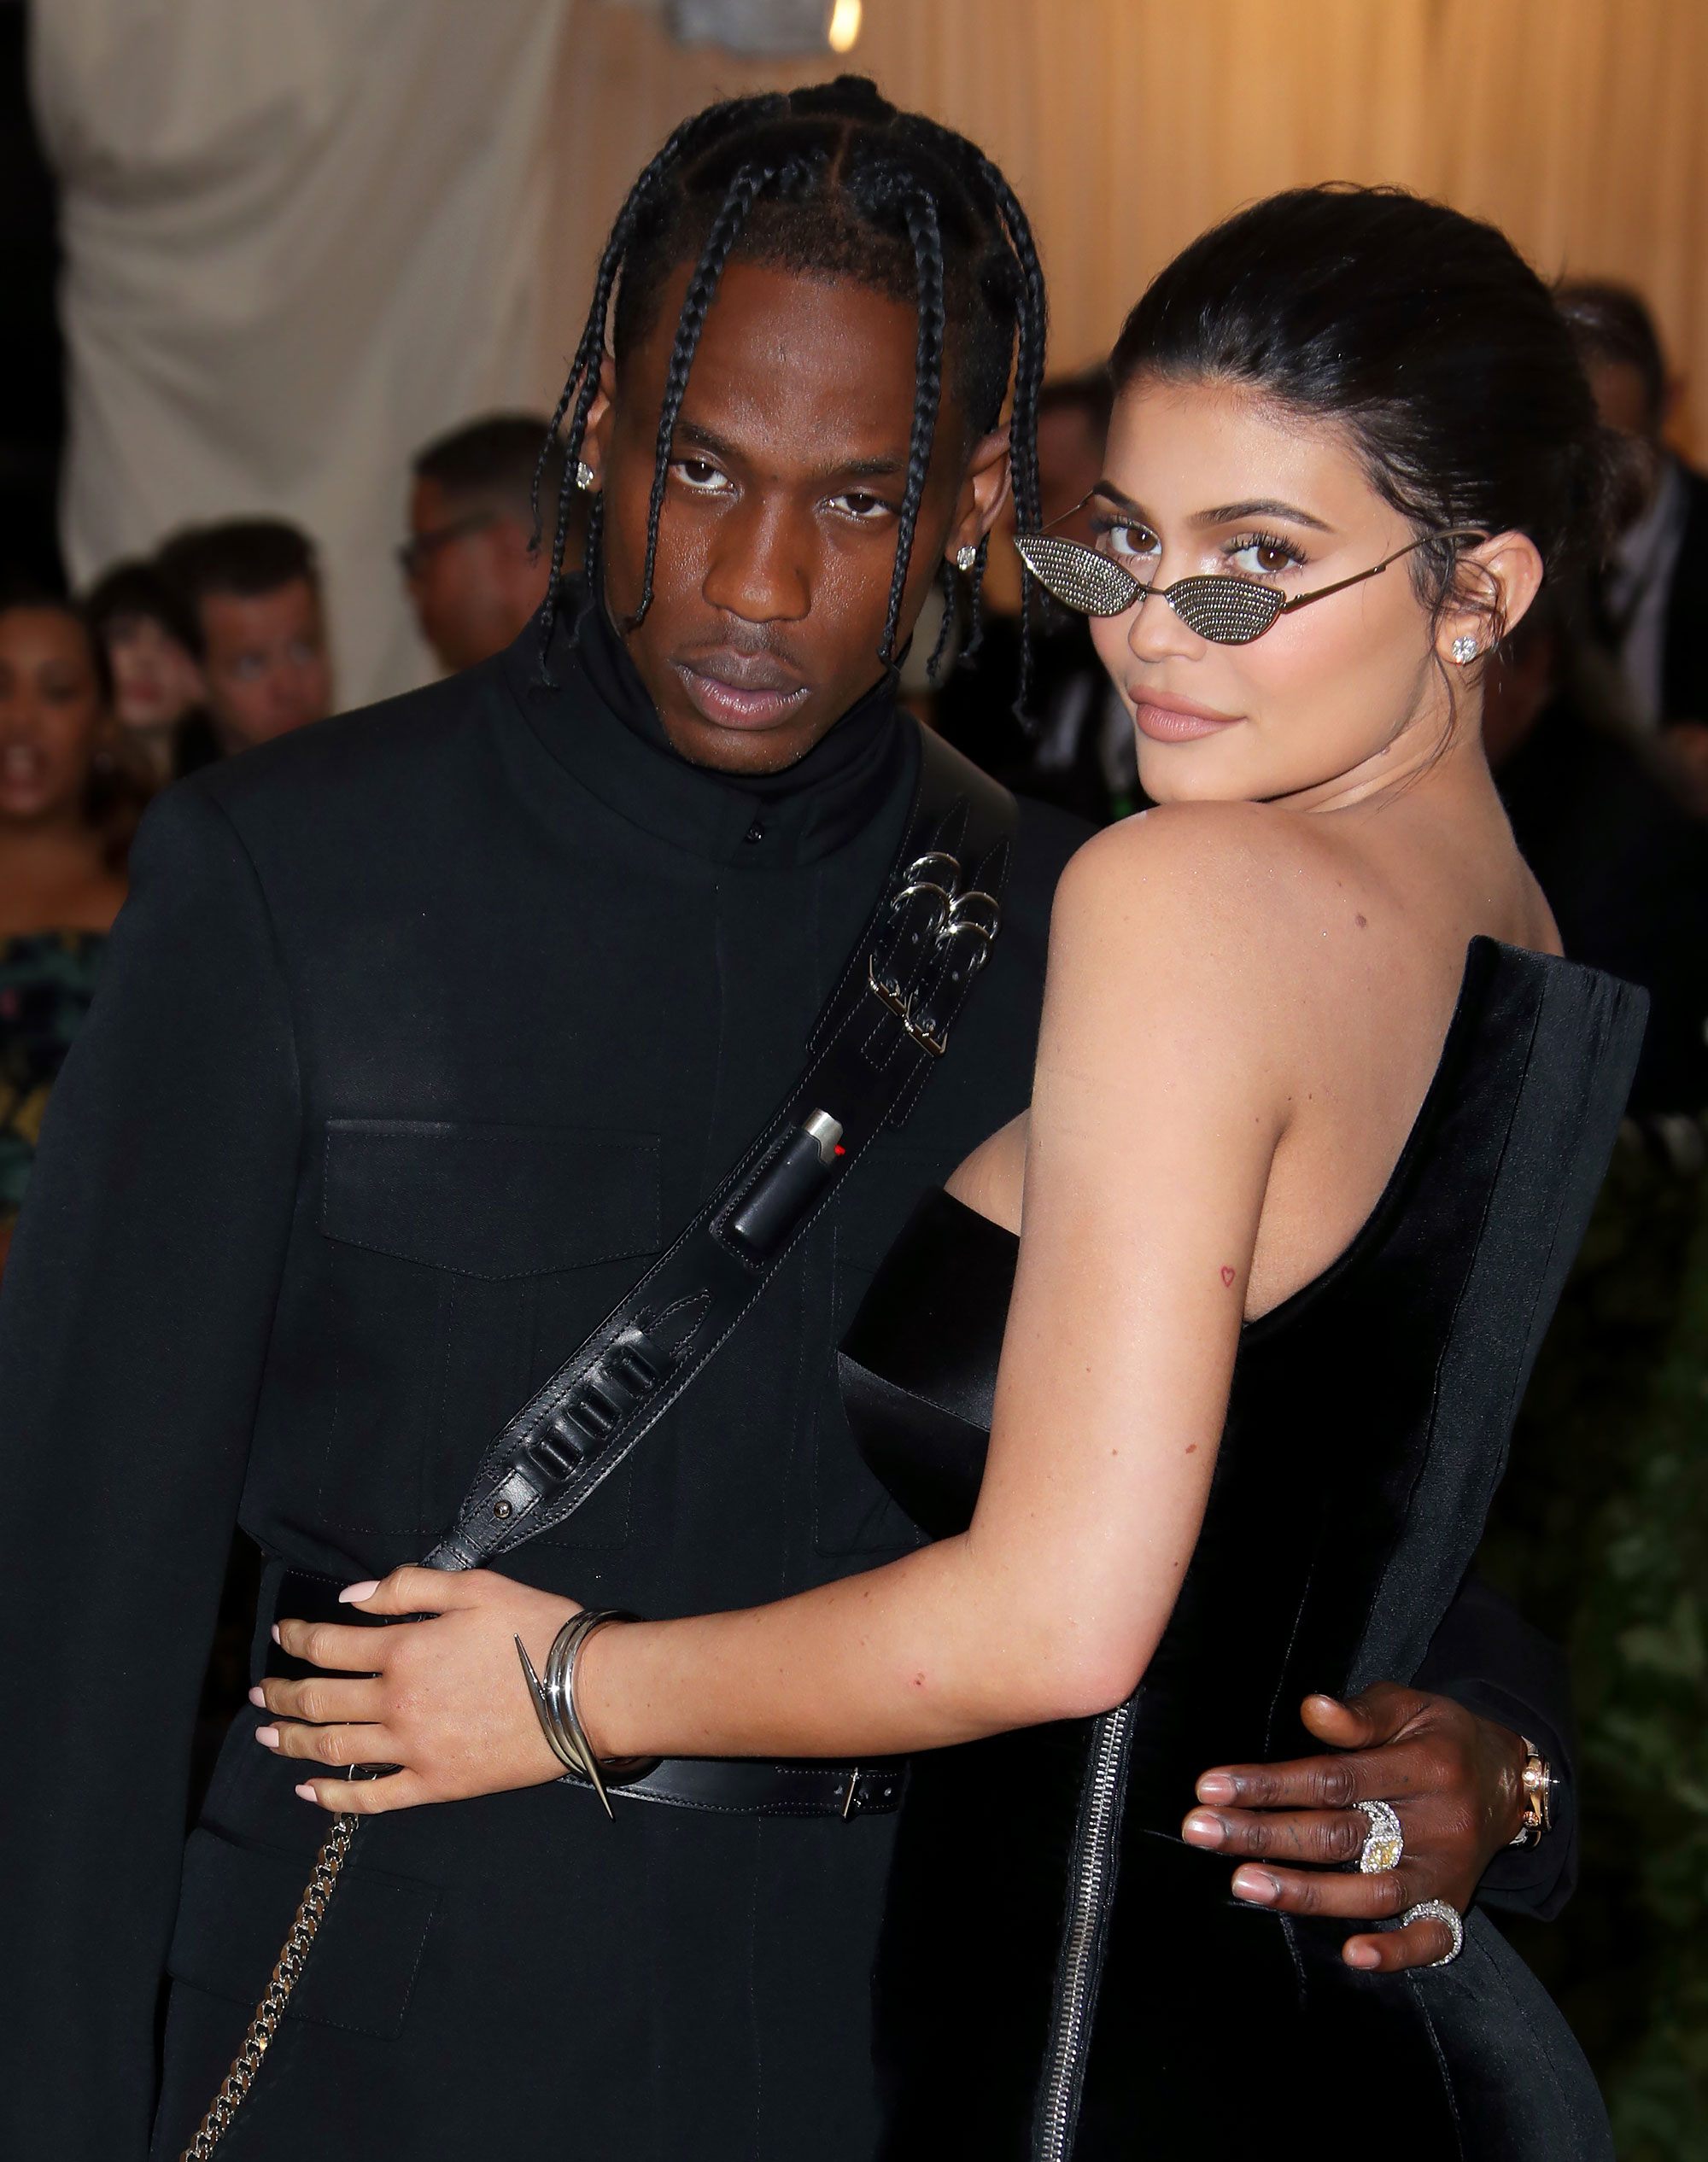 Kylie Jenner and Travis Scott Are 'Not Putting Pressure' on Getting Back Together